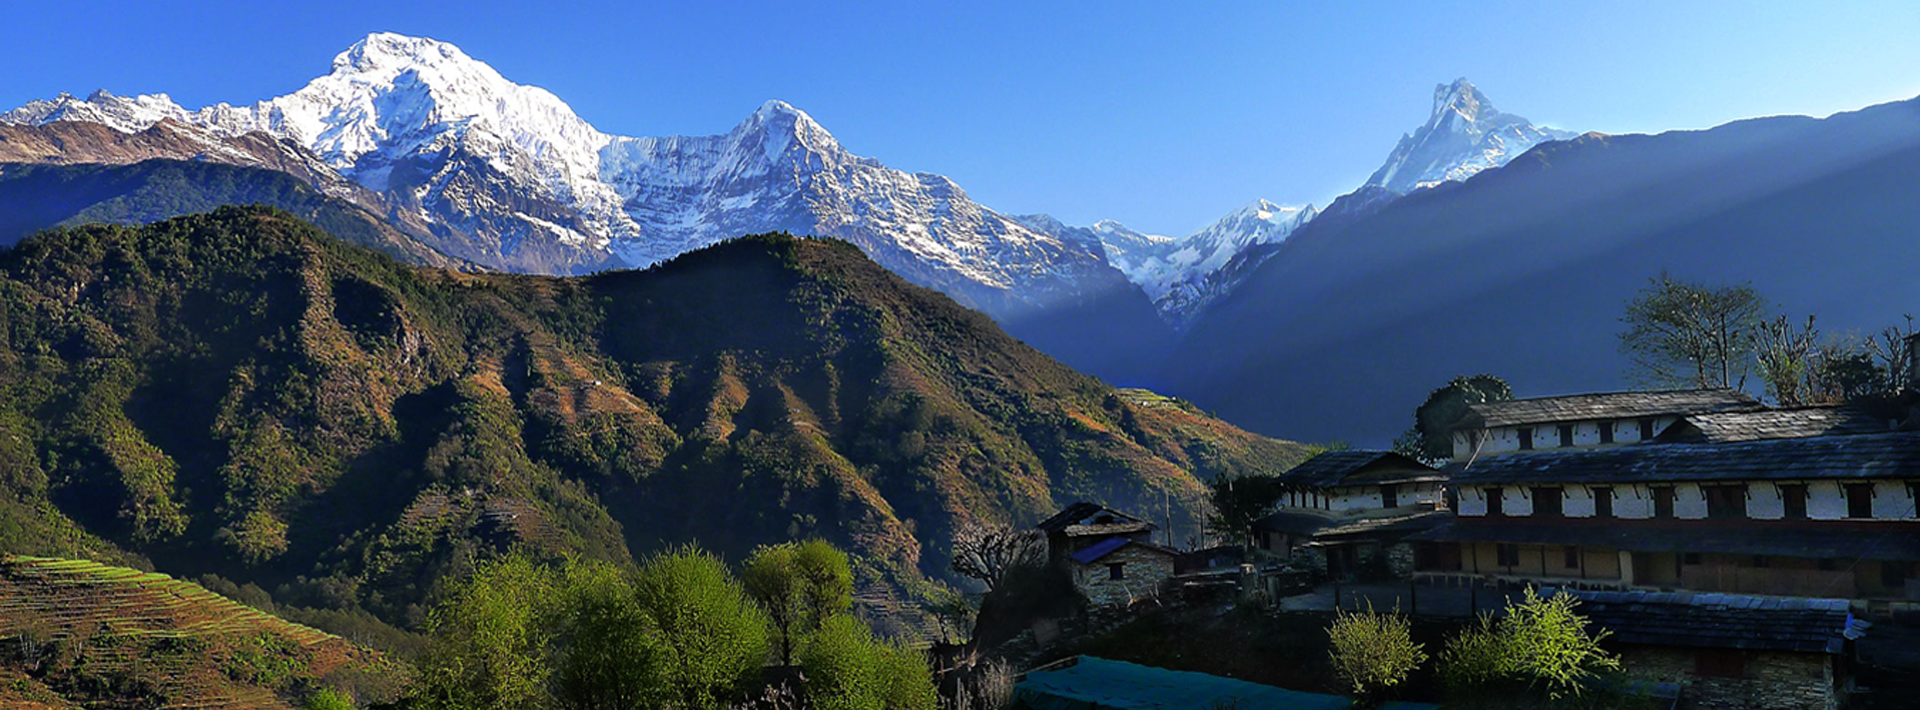 DISCOVER NEPAL & ITS BEAUTY